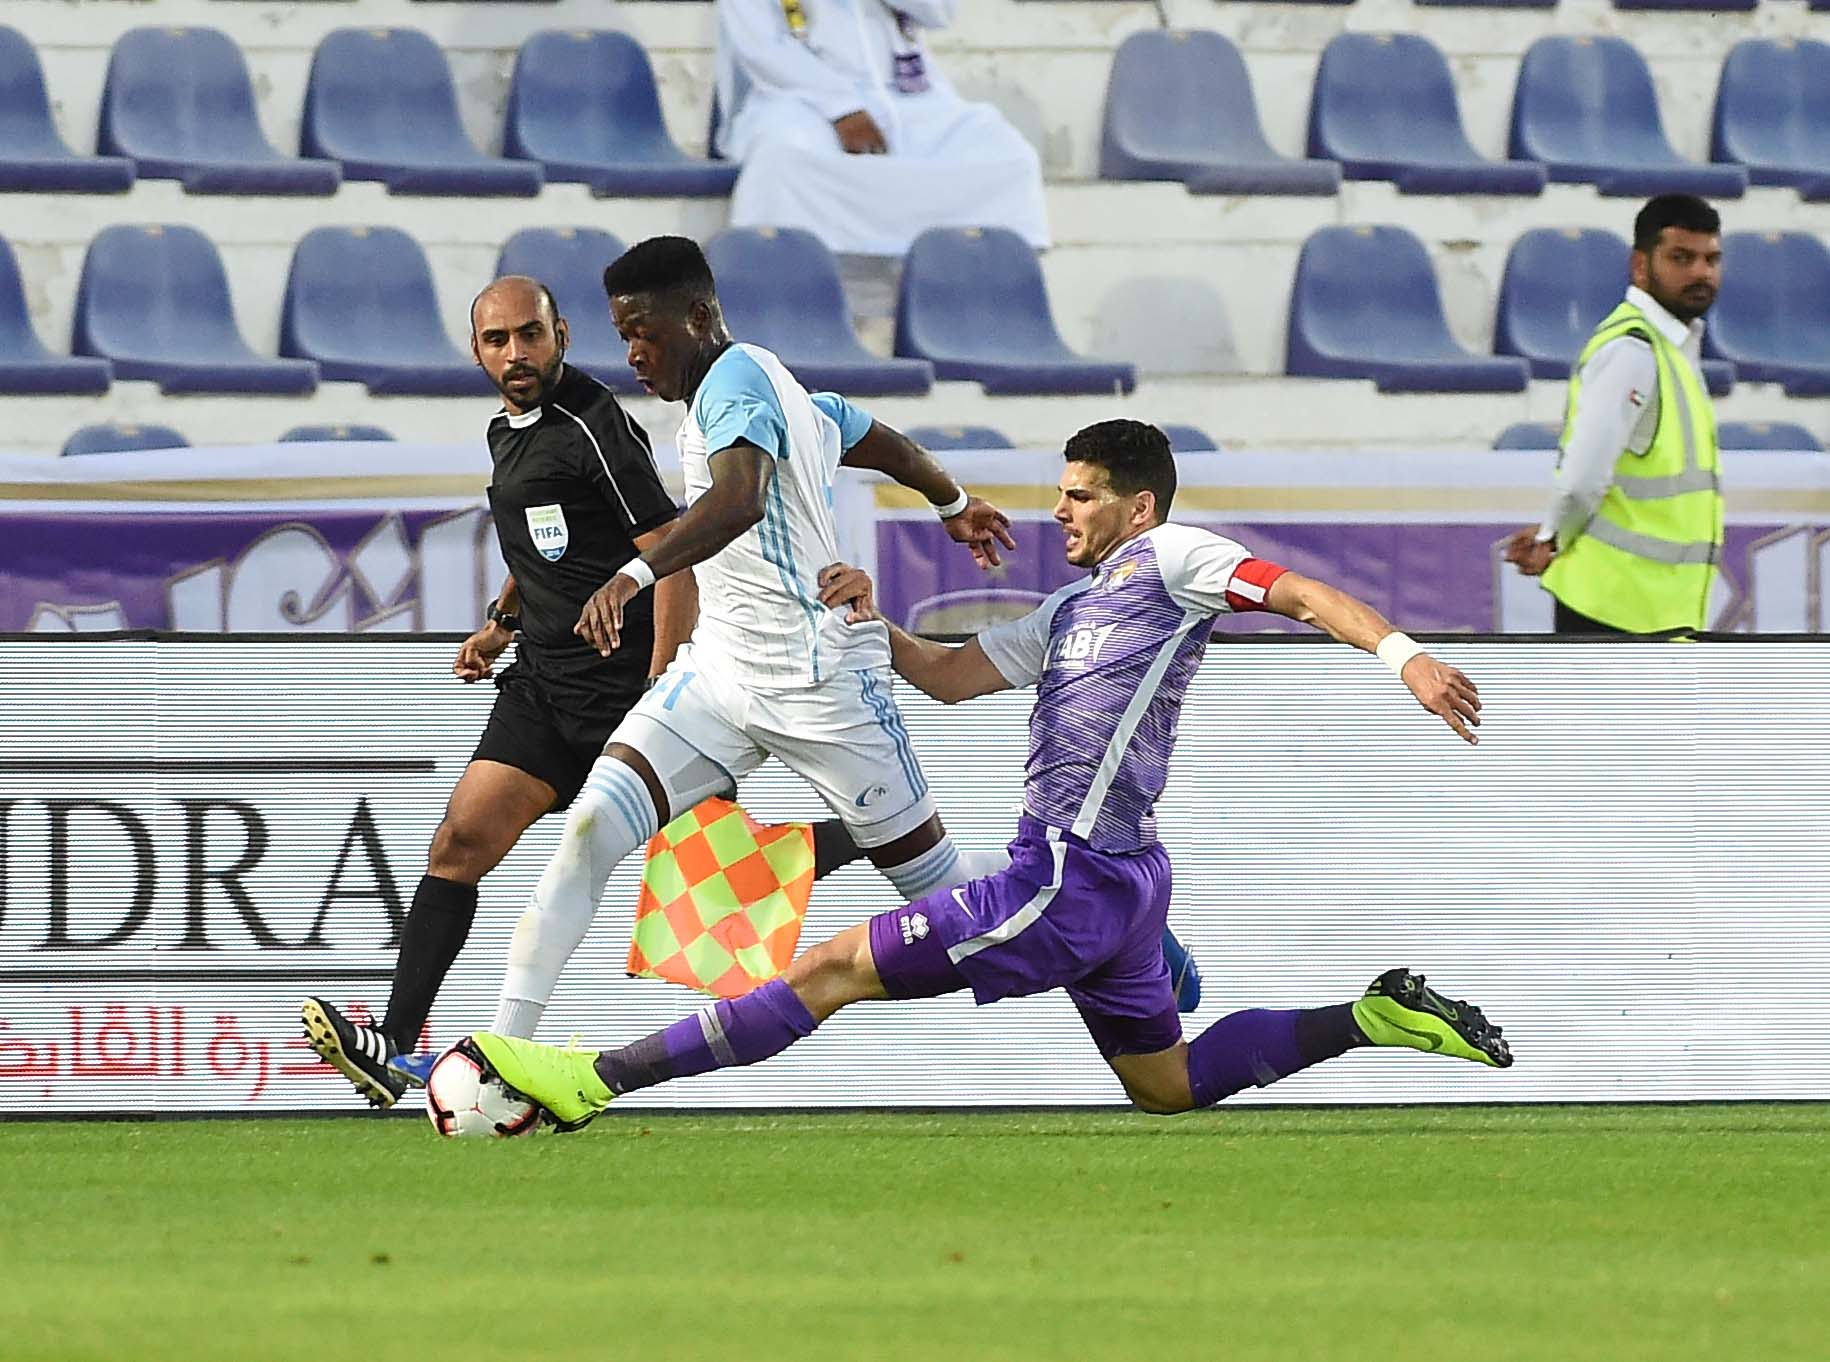 Bani Yas edge Al Ain, reach semi-final